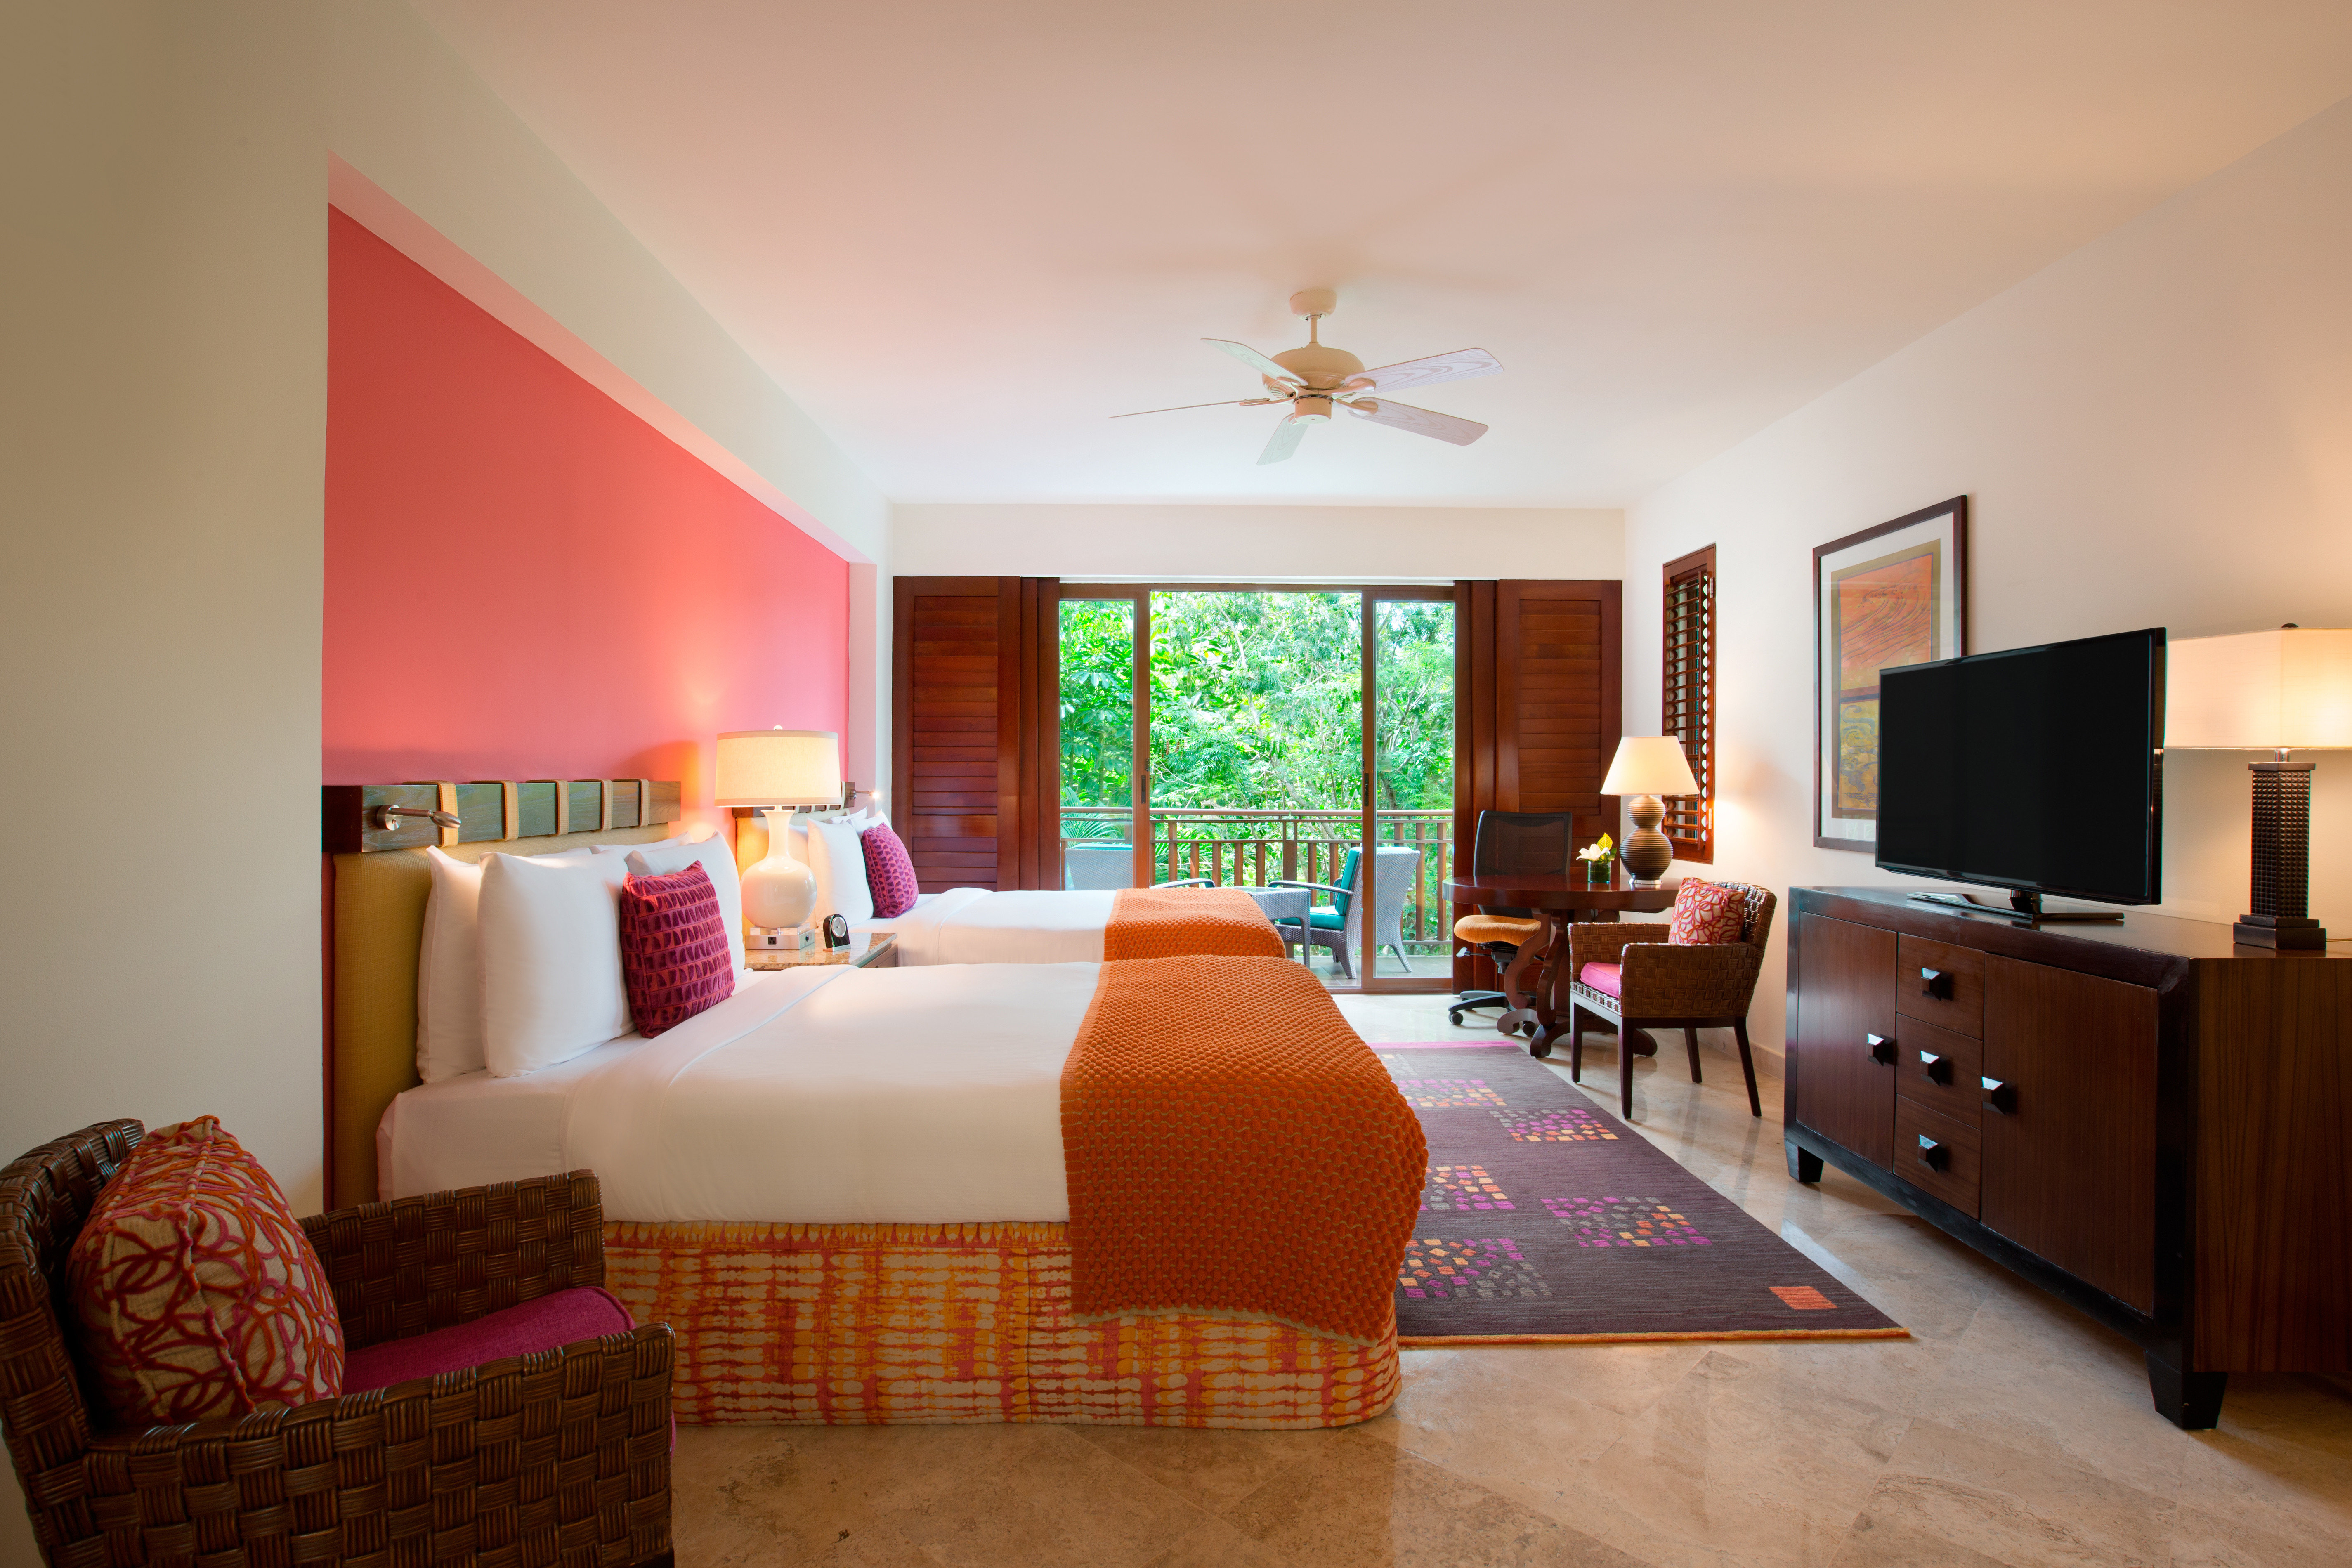 All-Inclusive Resorts Beachfront Bedroom caribbean Classic Family Family Travel Hotels Living Resort indoor wall floor room ceiling sofa property living room bed red estate home real estate Suite hardwood interior design cottage Villa furniture Design farmhouse apartment decorated